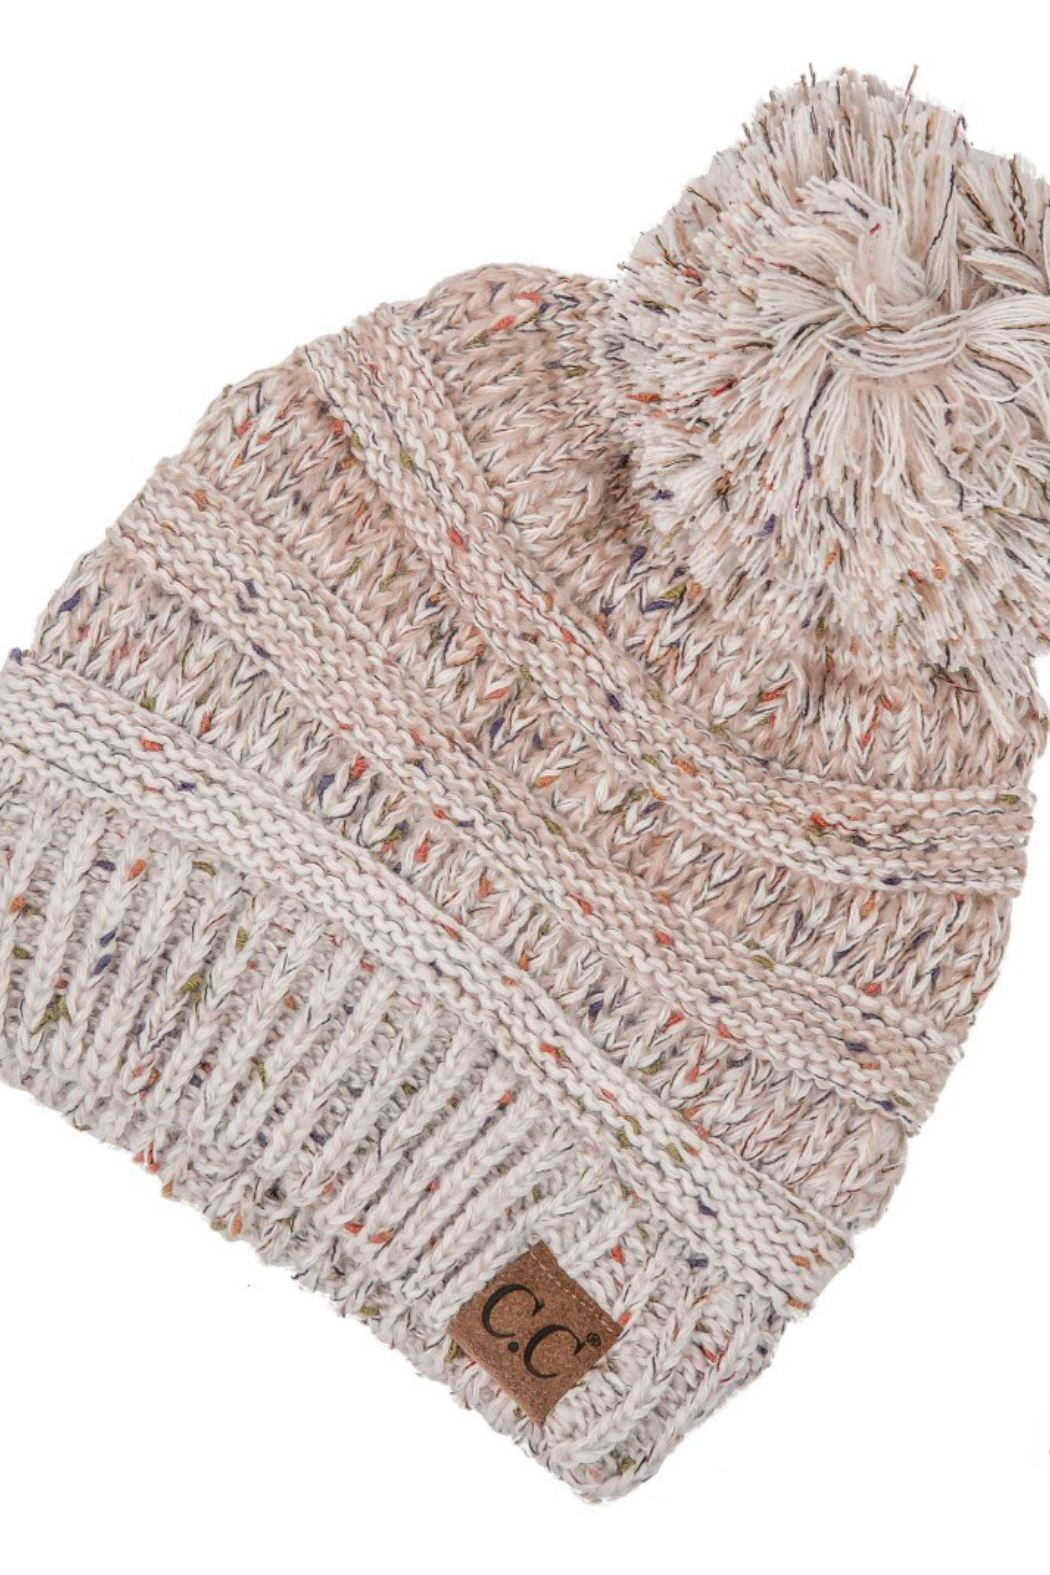 Judson & Co. Ombre ribbed hat - Main Image